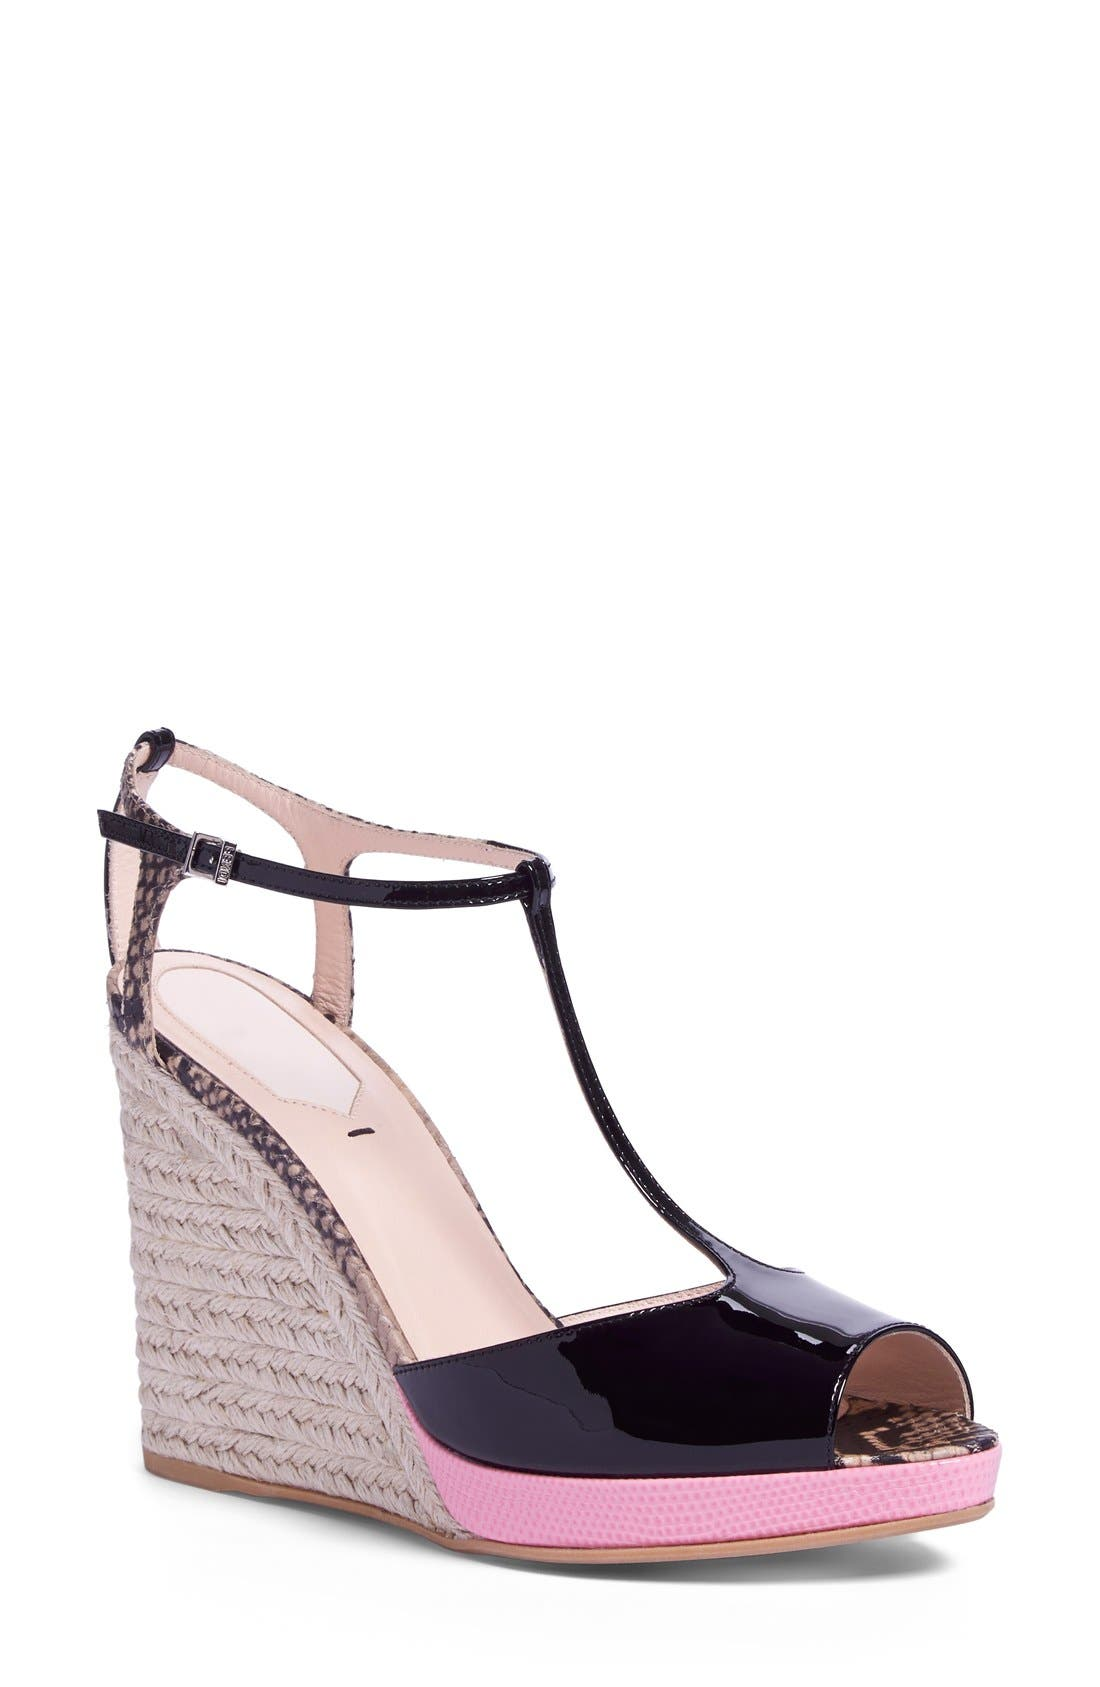 'Elodie' T-Strap Wedge Sandal,                         Main,                         color, 002